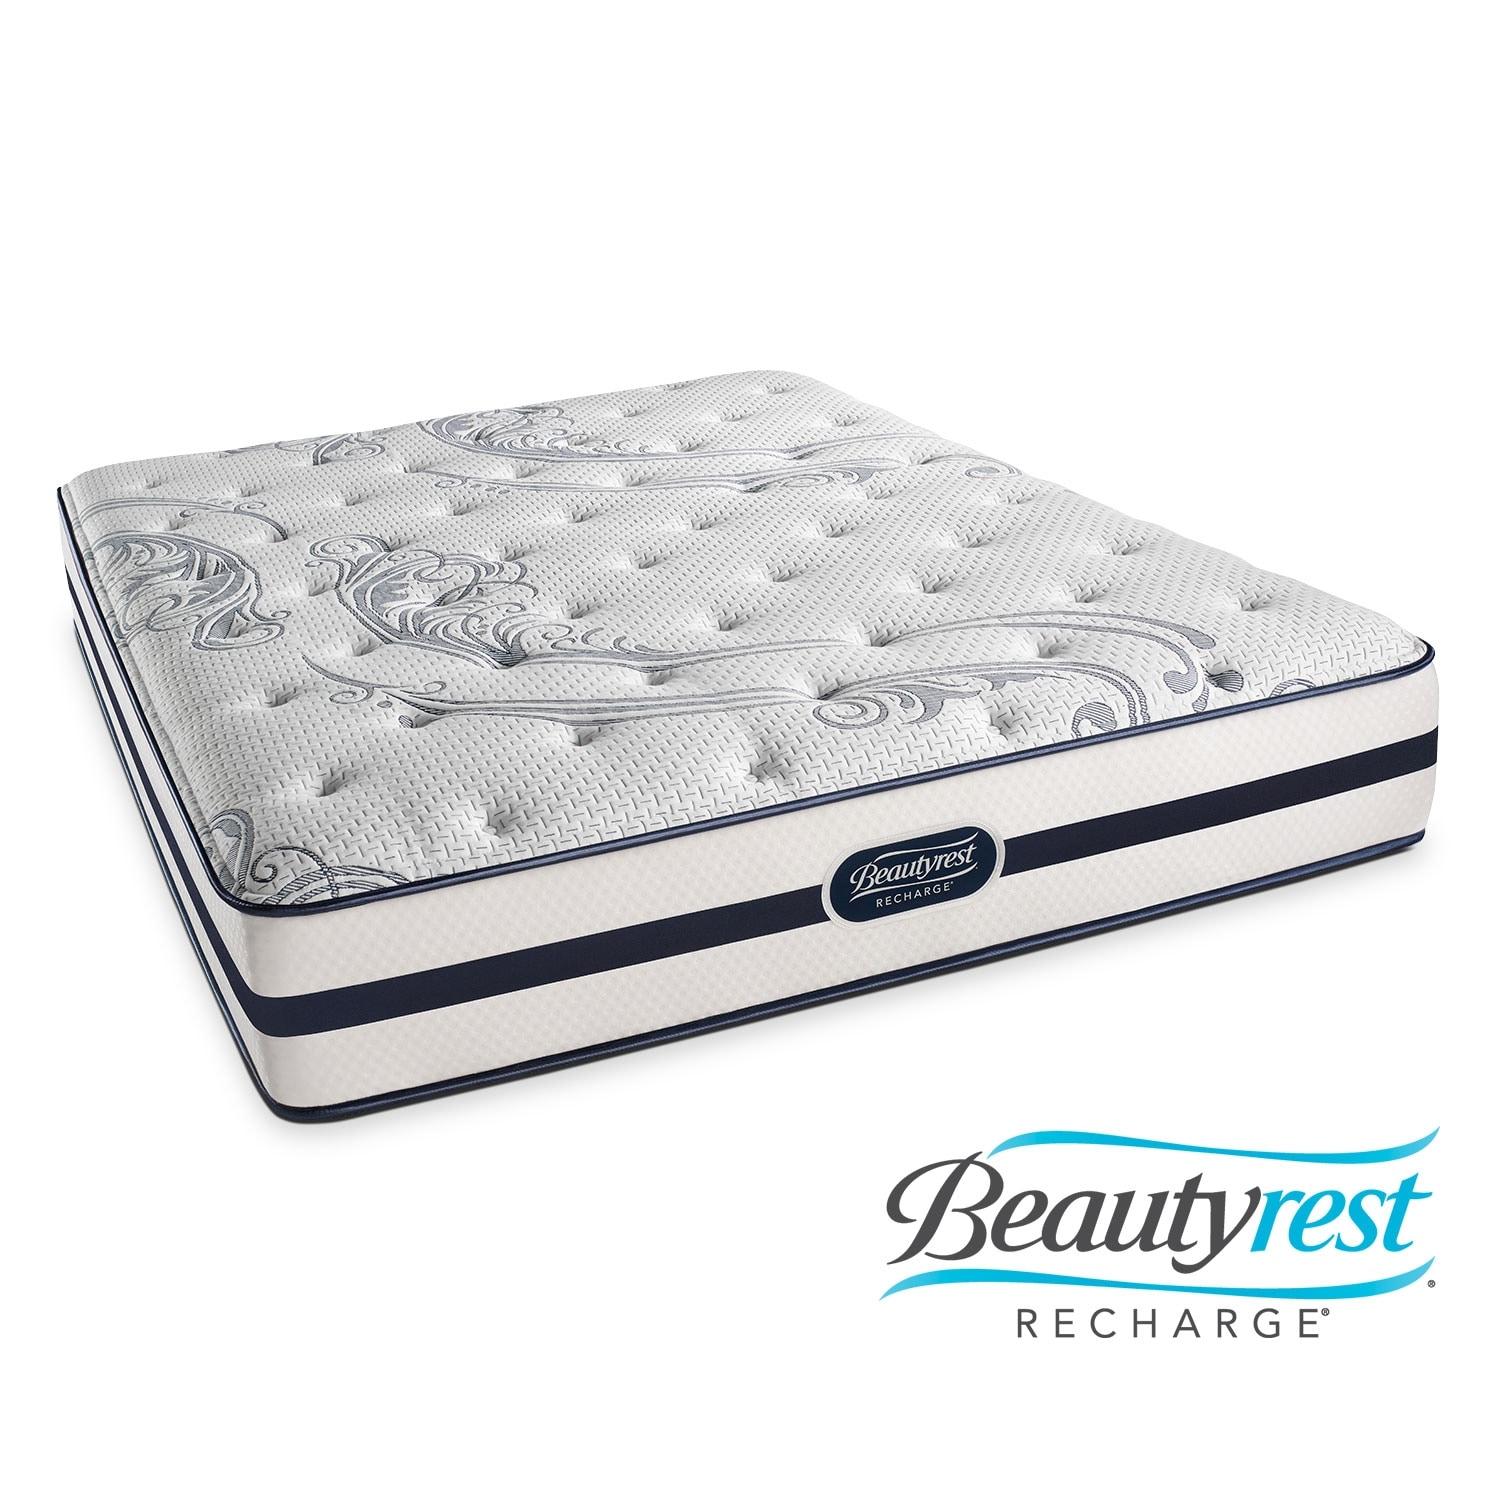 Mattresses and Bedding - Alisa Luxury Firm King Mattress